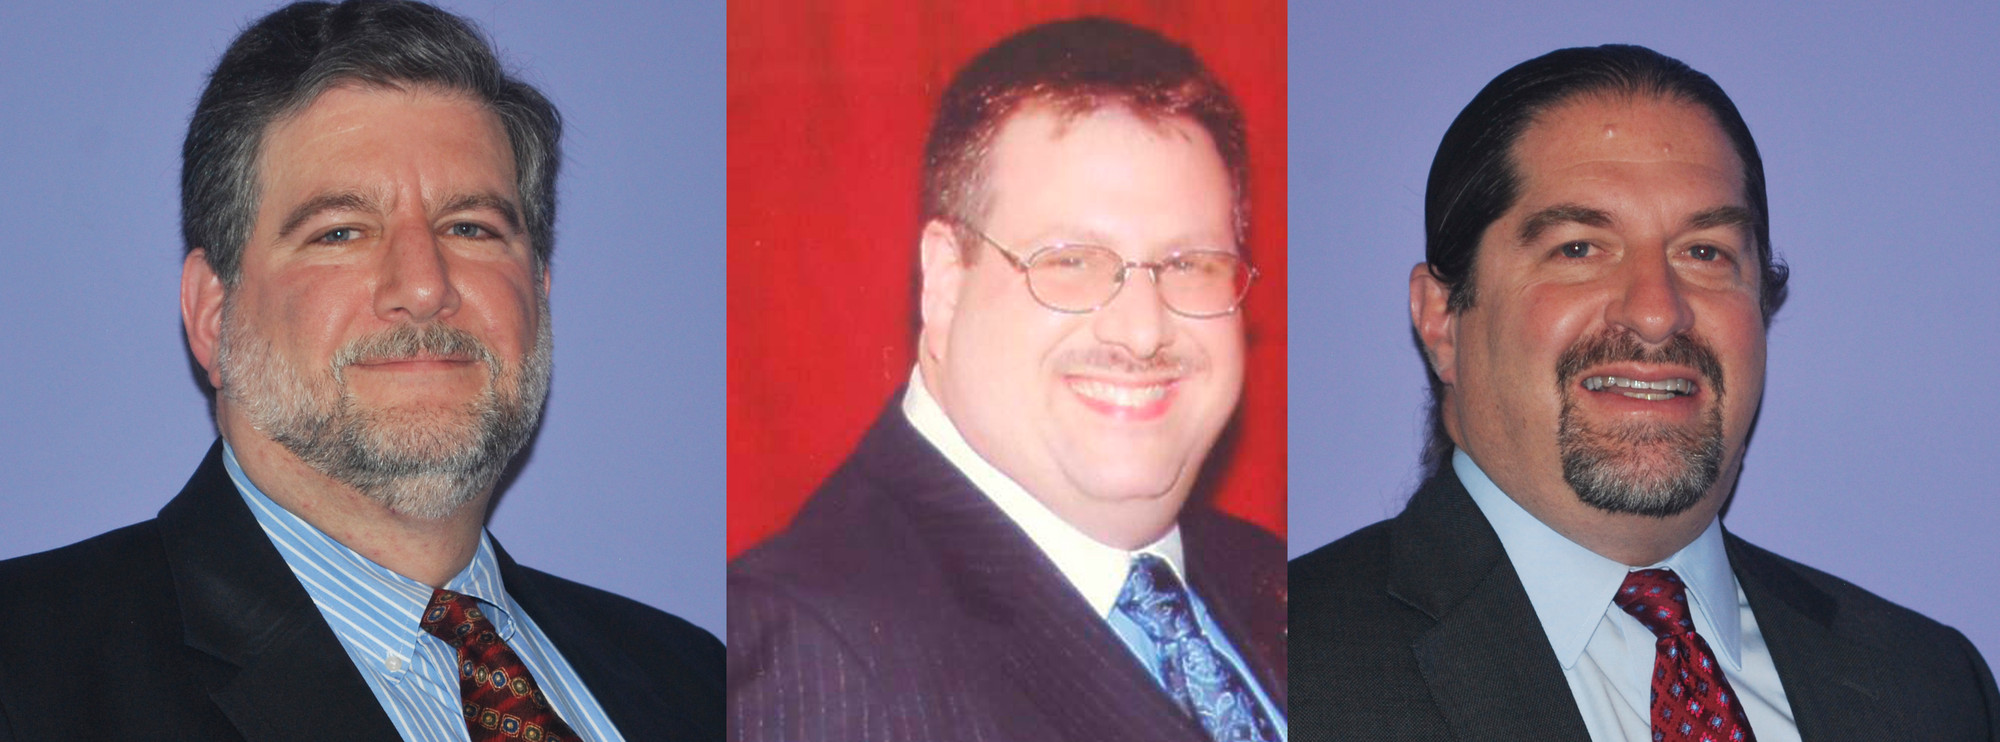 Three candidates are contending for two Board of Education seats in Hewlett-Woodmere. From left are Harold Kislik, Fred Usherson and Mitchell Greebel.